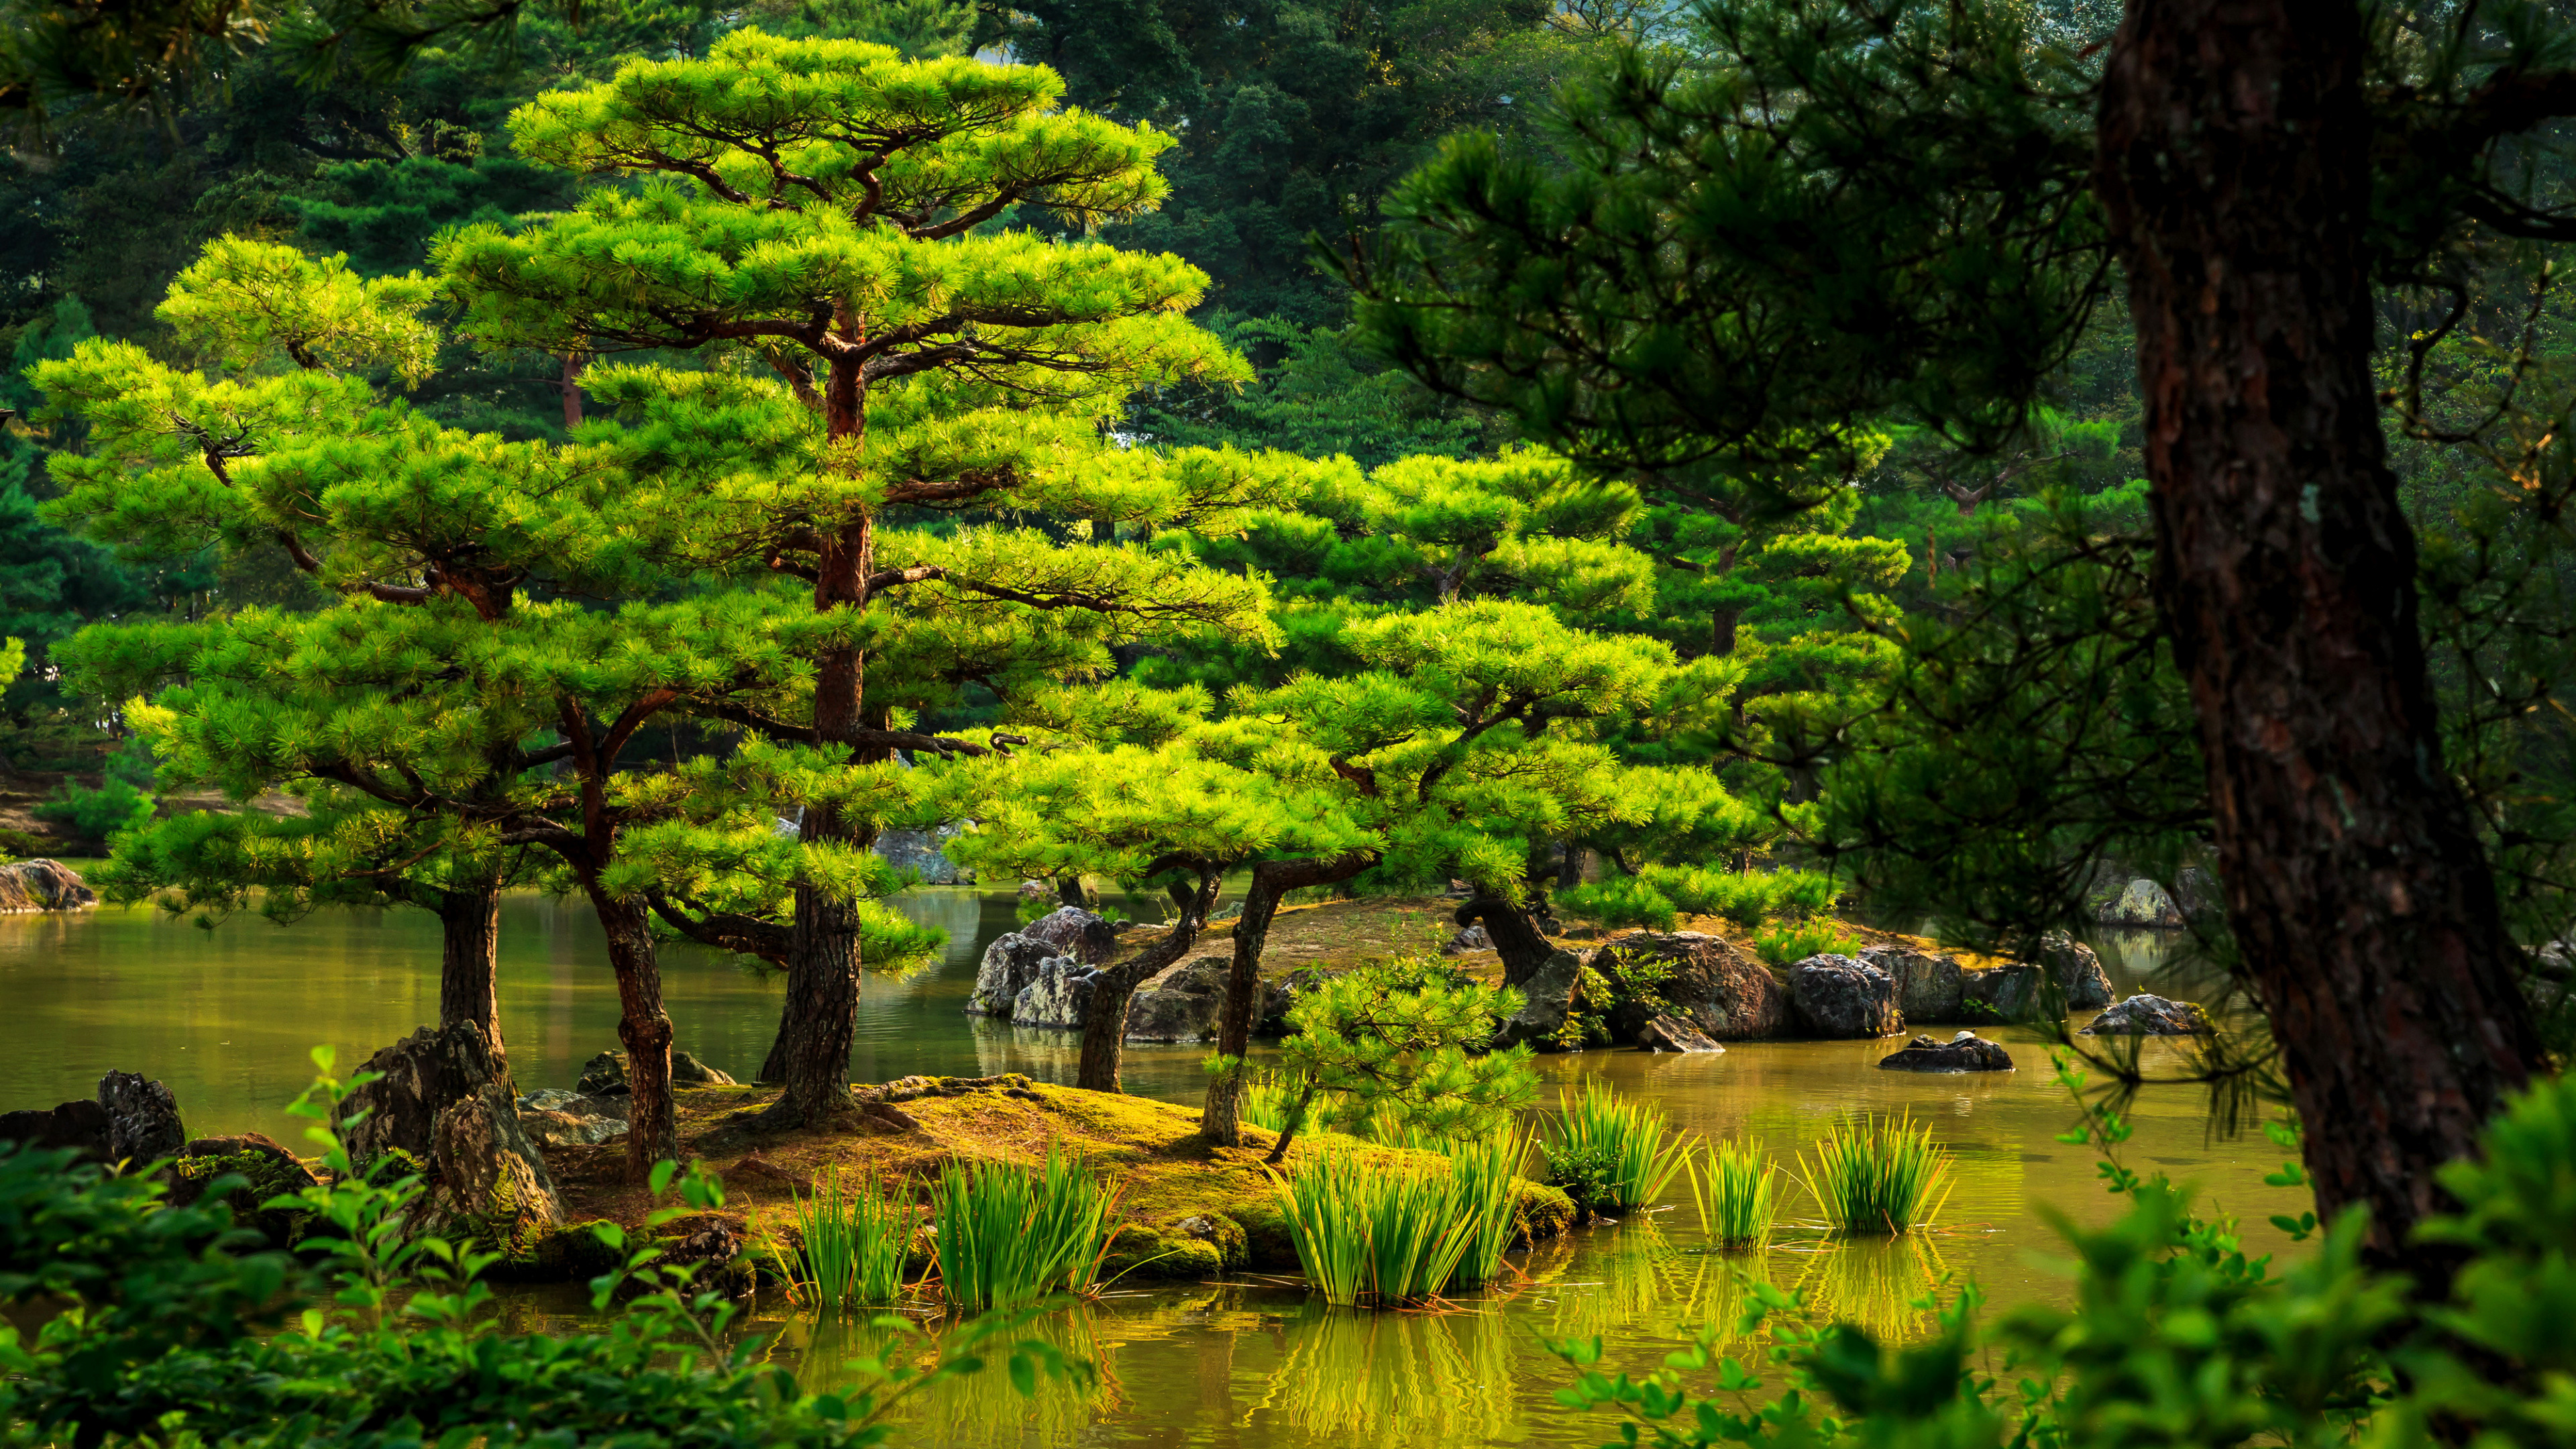 3840x2160 Water, Nature Reserve, Botanical Garden, Japanese Garden, Bog Wallpaper in   Resolution